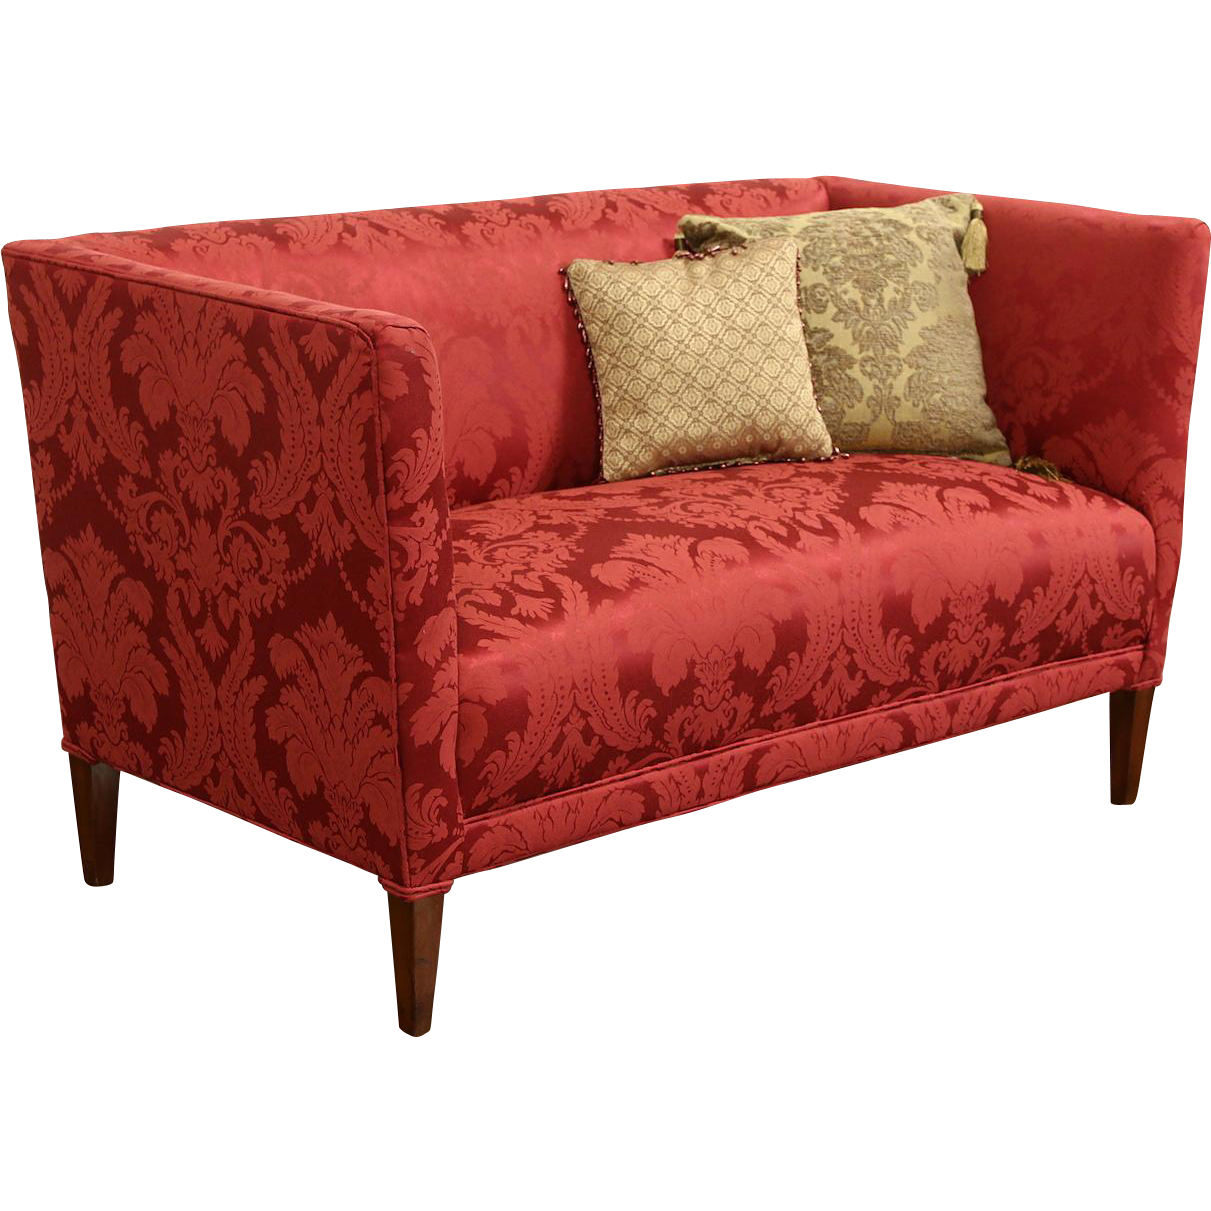 Scandinavian 1940's Vintage Loveseat or Settee, New Red Upholstery